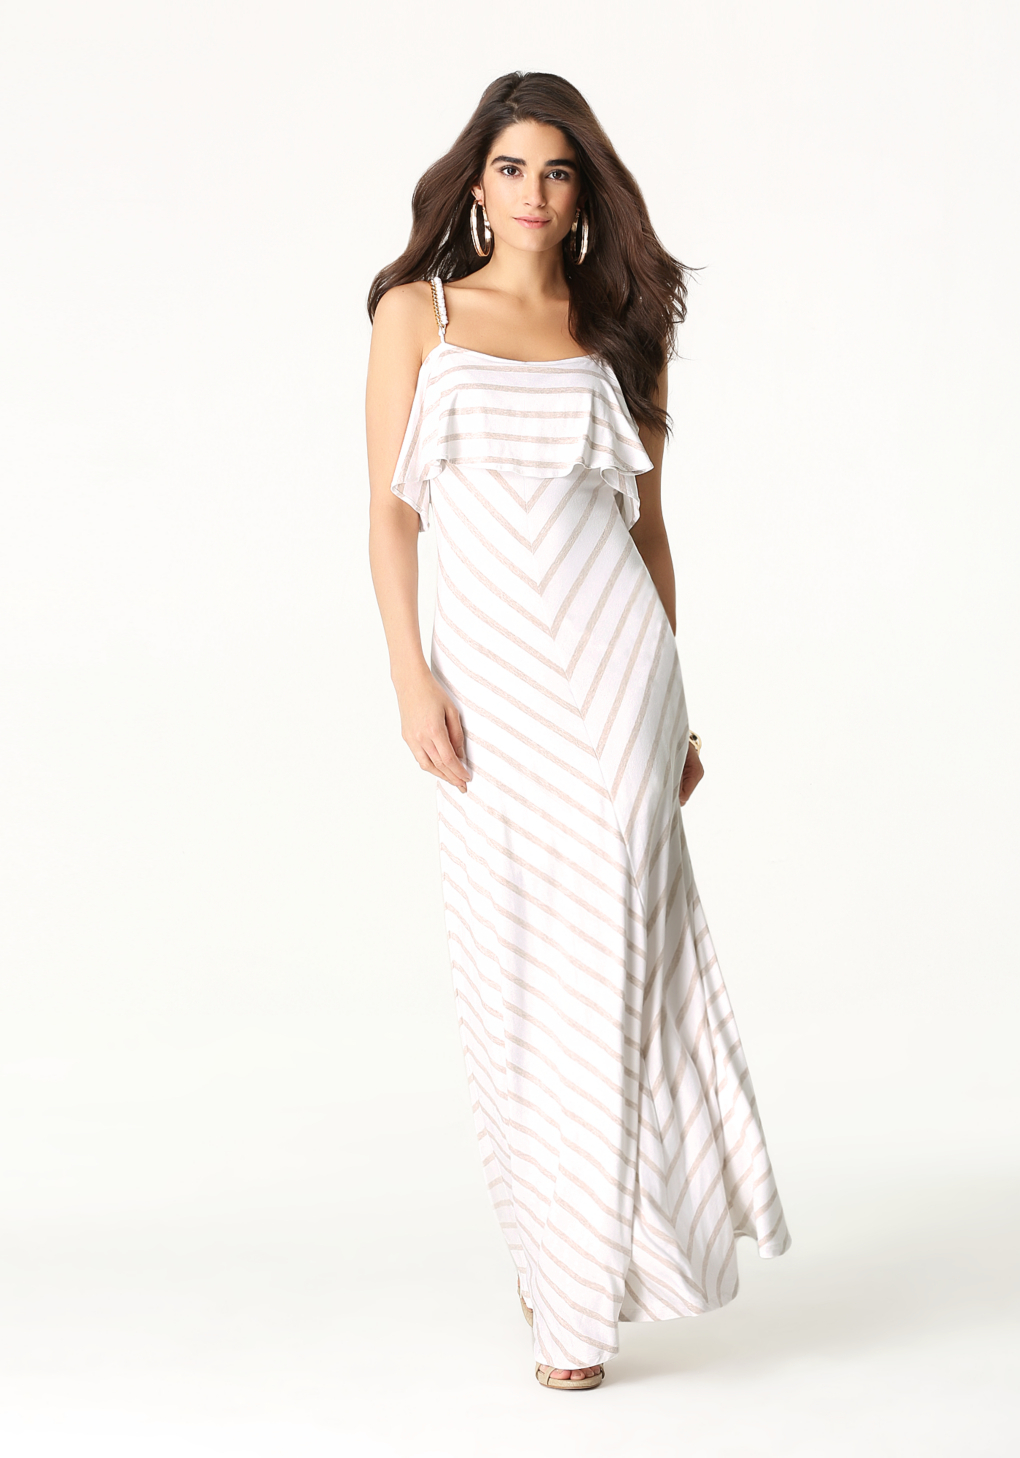 Why settle for less when you can go maxi? Shop women's maxi dresses at boohoo in all styles, from black or white to summery floral long dresses. Petite Scoop Neck Maxi Dress $ $ Boutique Embellished Prom Maxi Dress from black and white classics to the floral maxi dresses, perfect for a floaty feminine style. Boohoo has the.